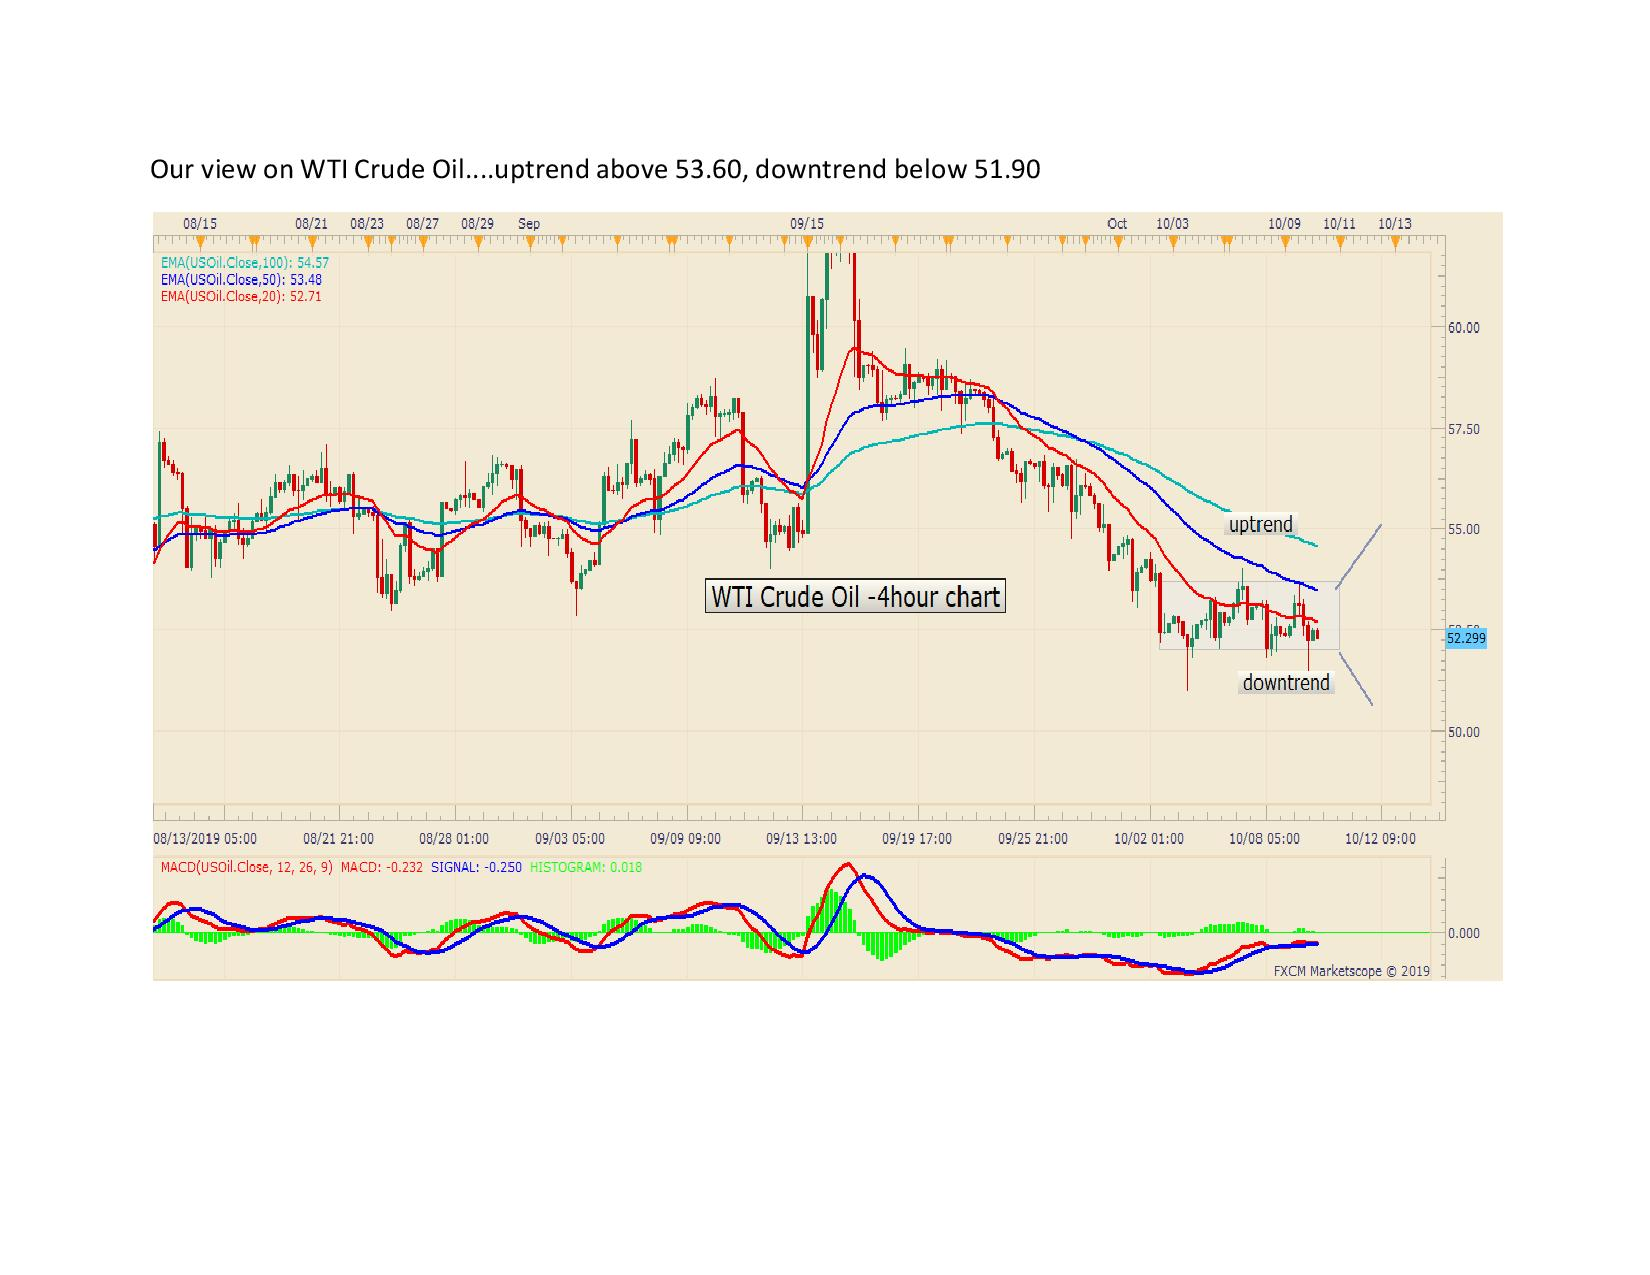 Our view on WTI Crude Oil page 001